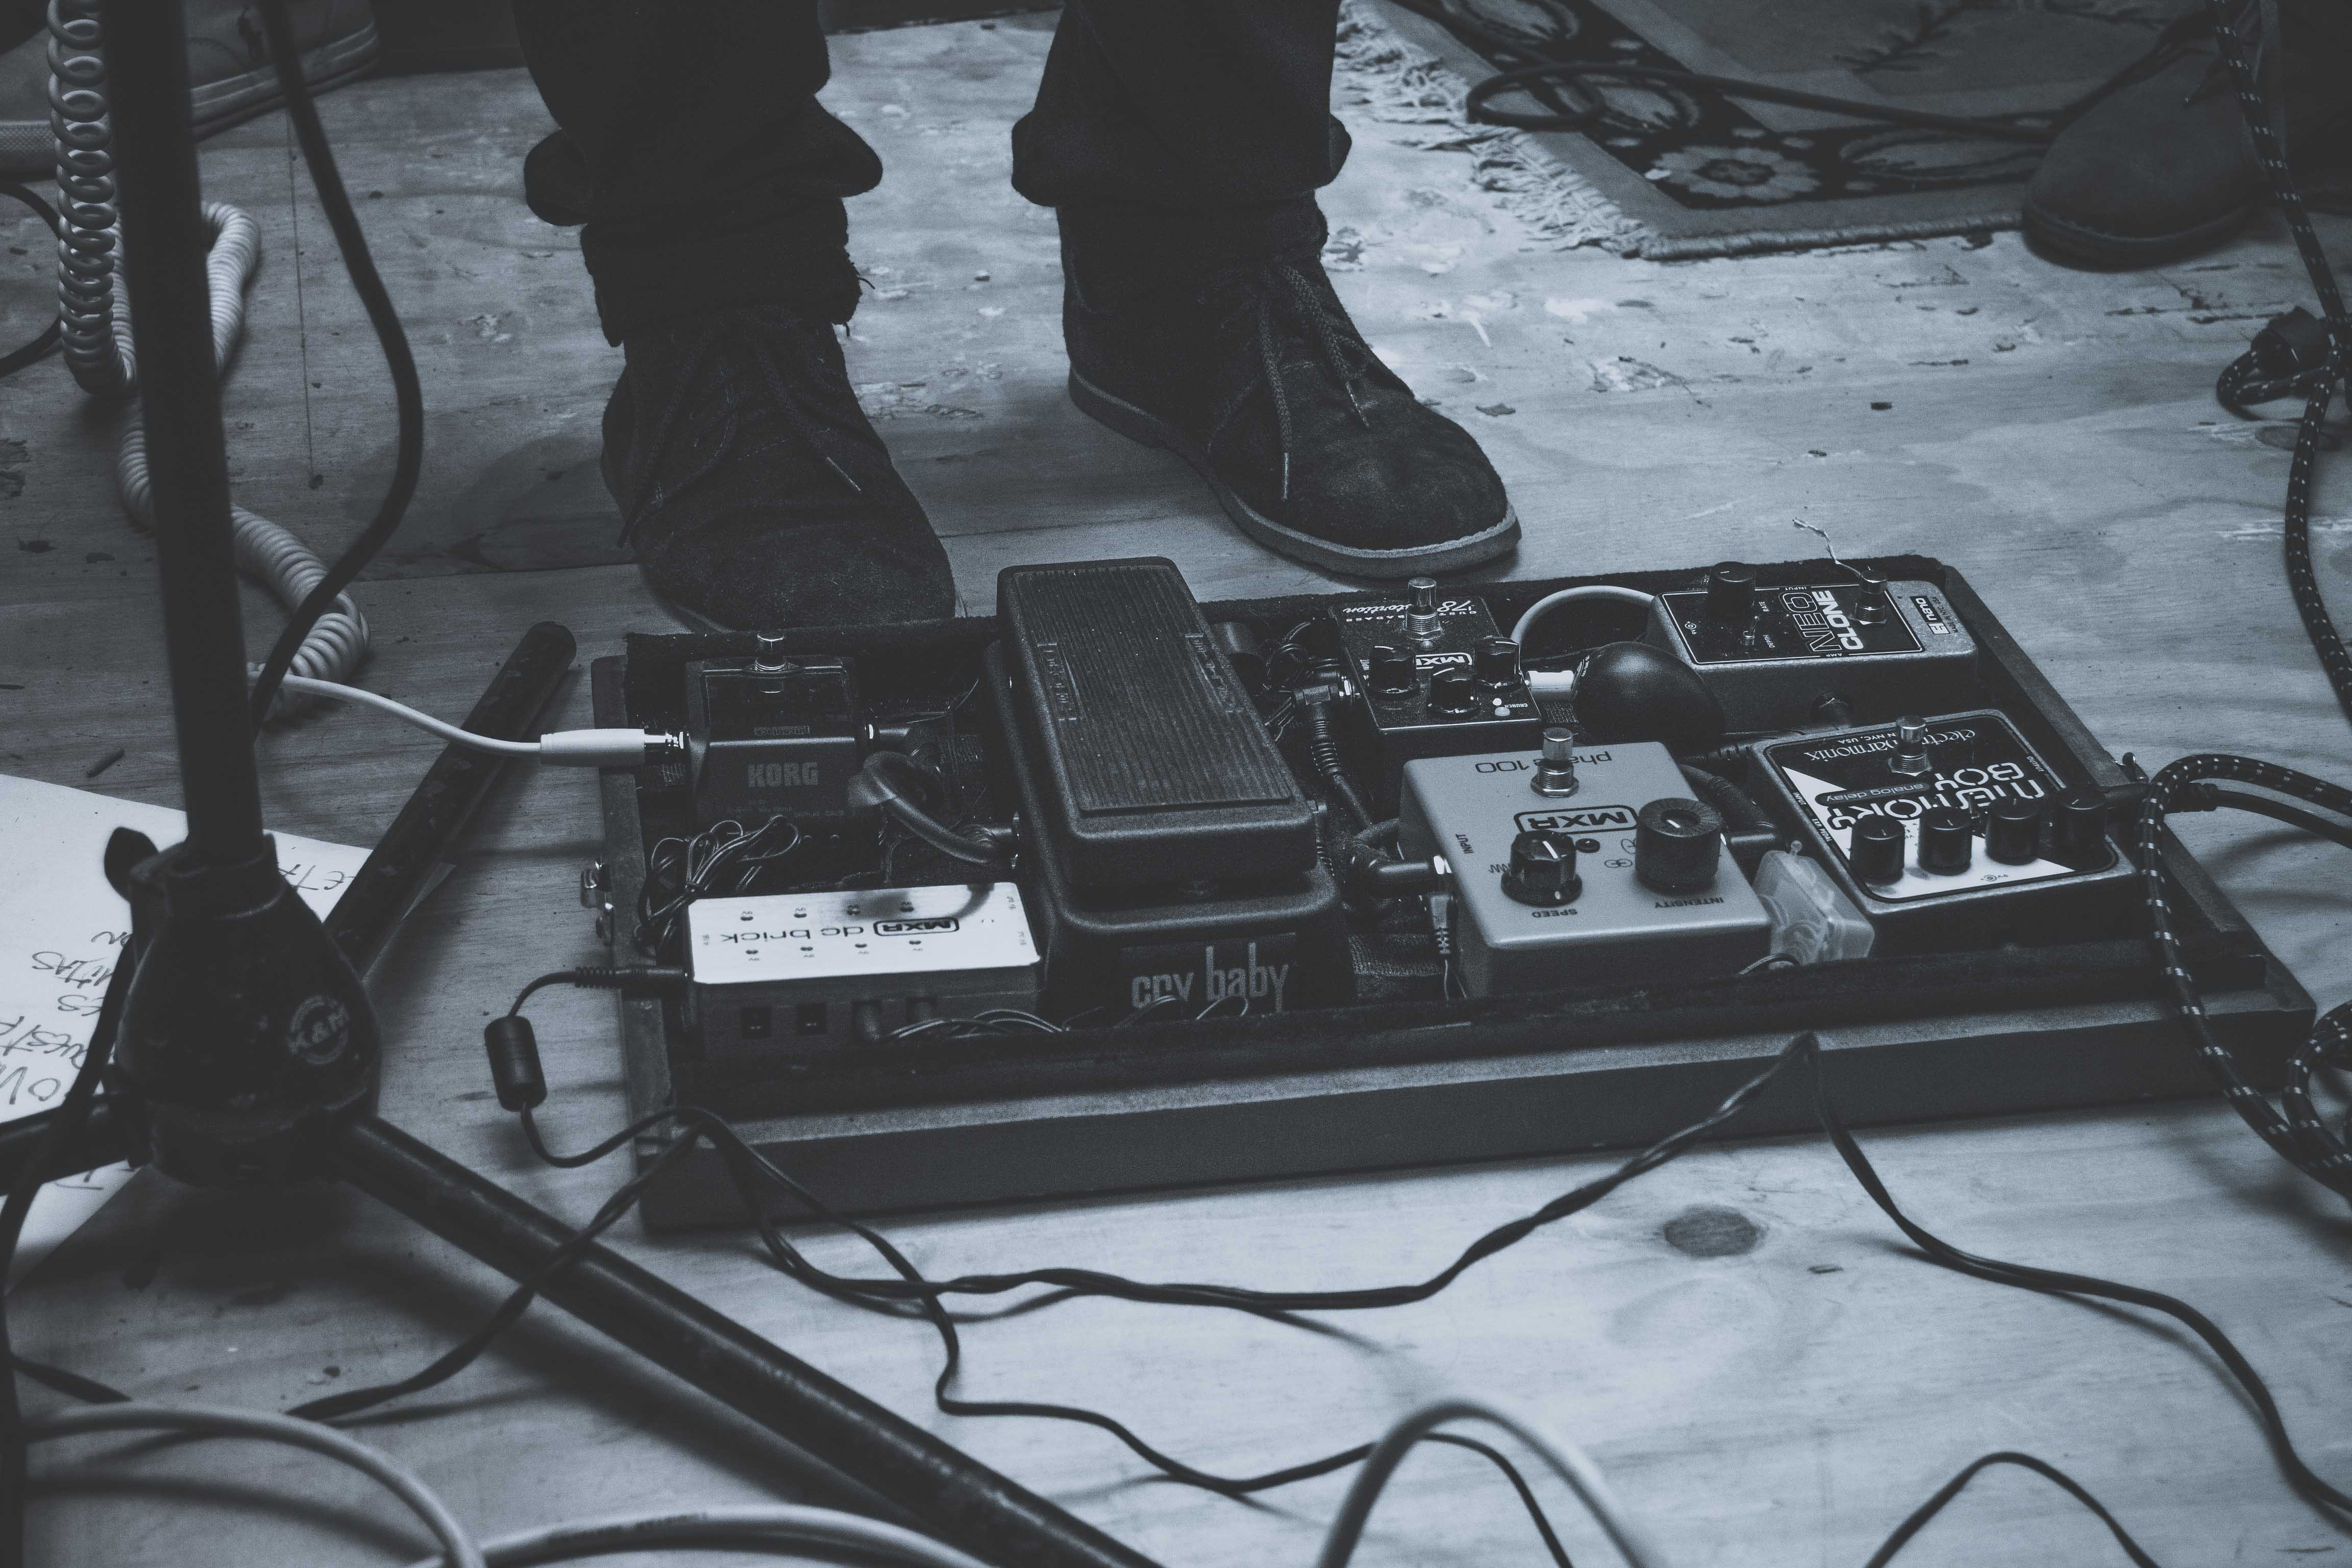 A low black-and-white shot of music equipment next to a person's shoes on stage